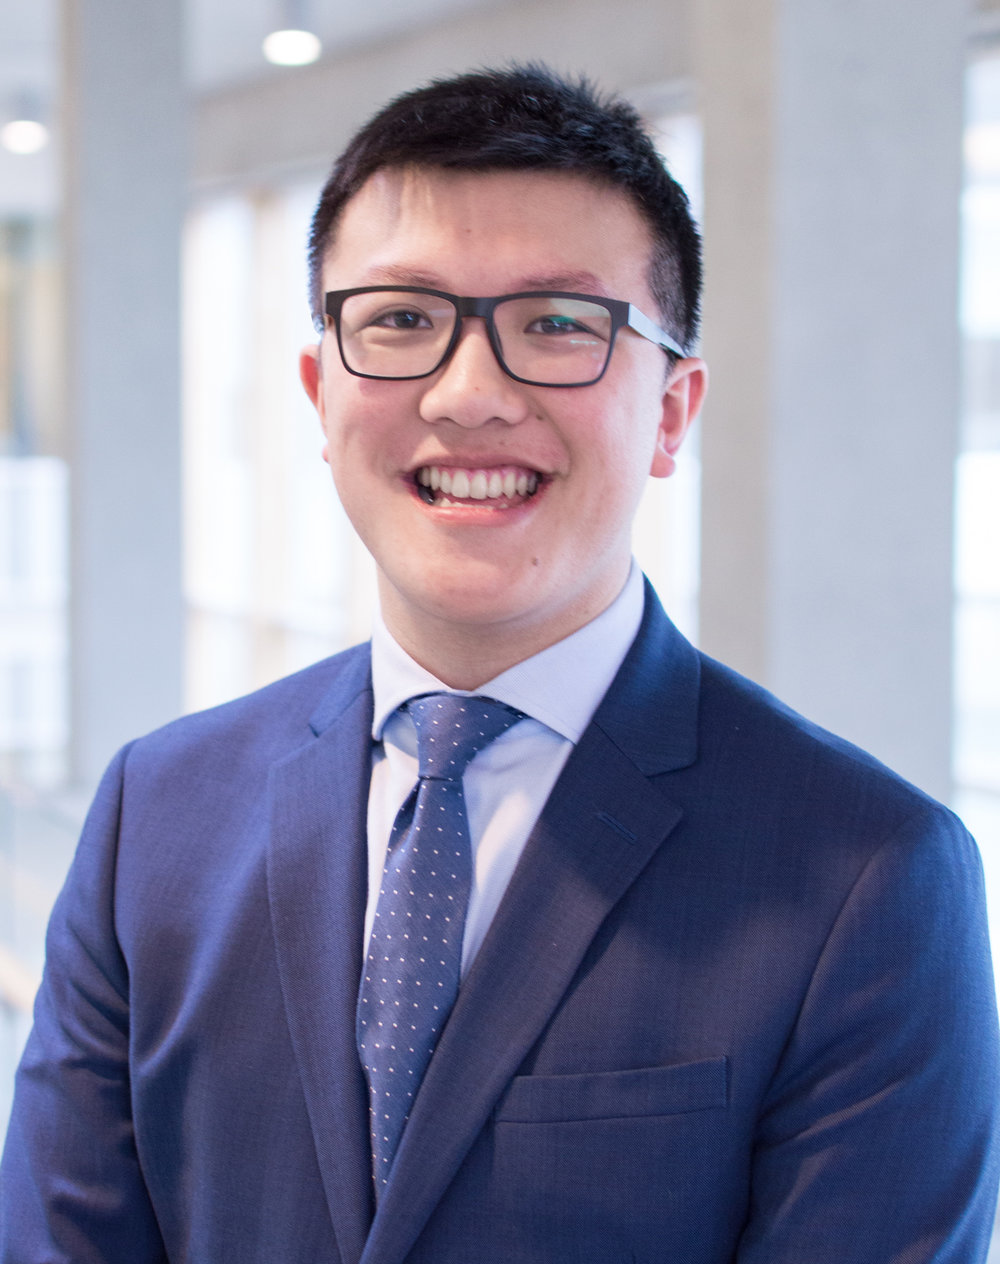 VICE-PRESIDENT OF HUMAN RESOURCES Jared Chiu basshr@sfu.ca